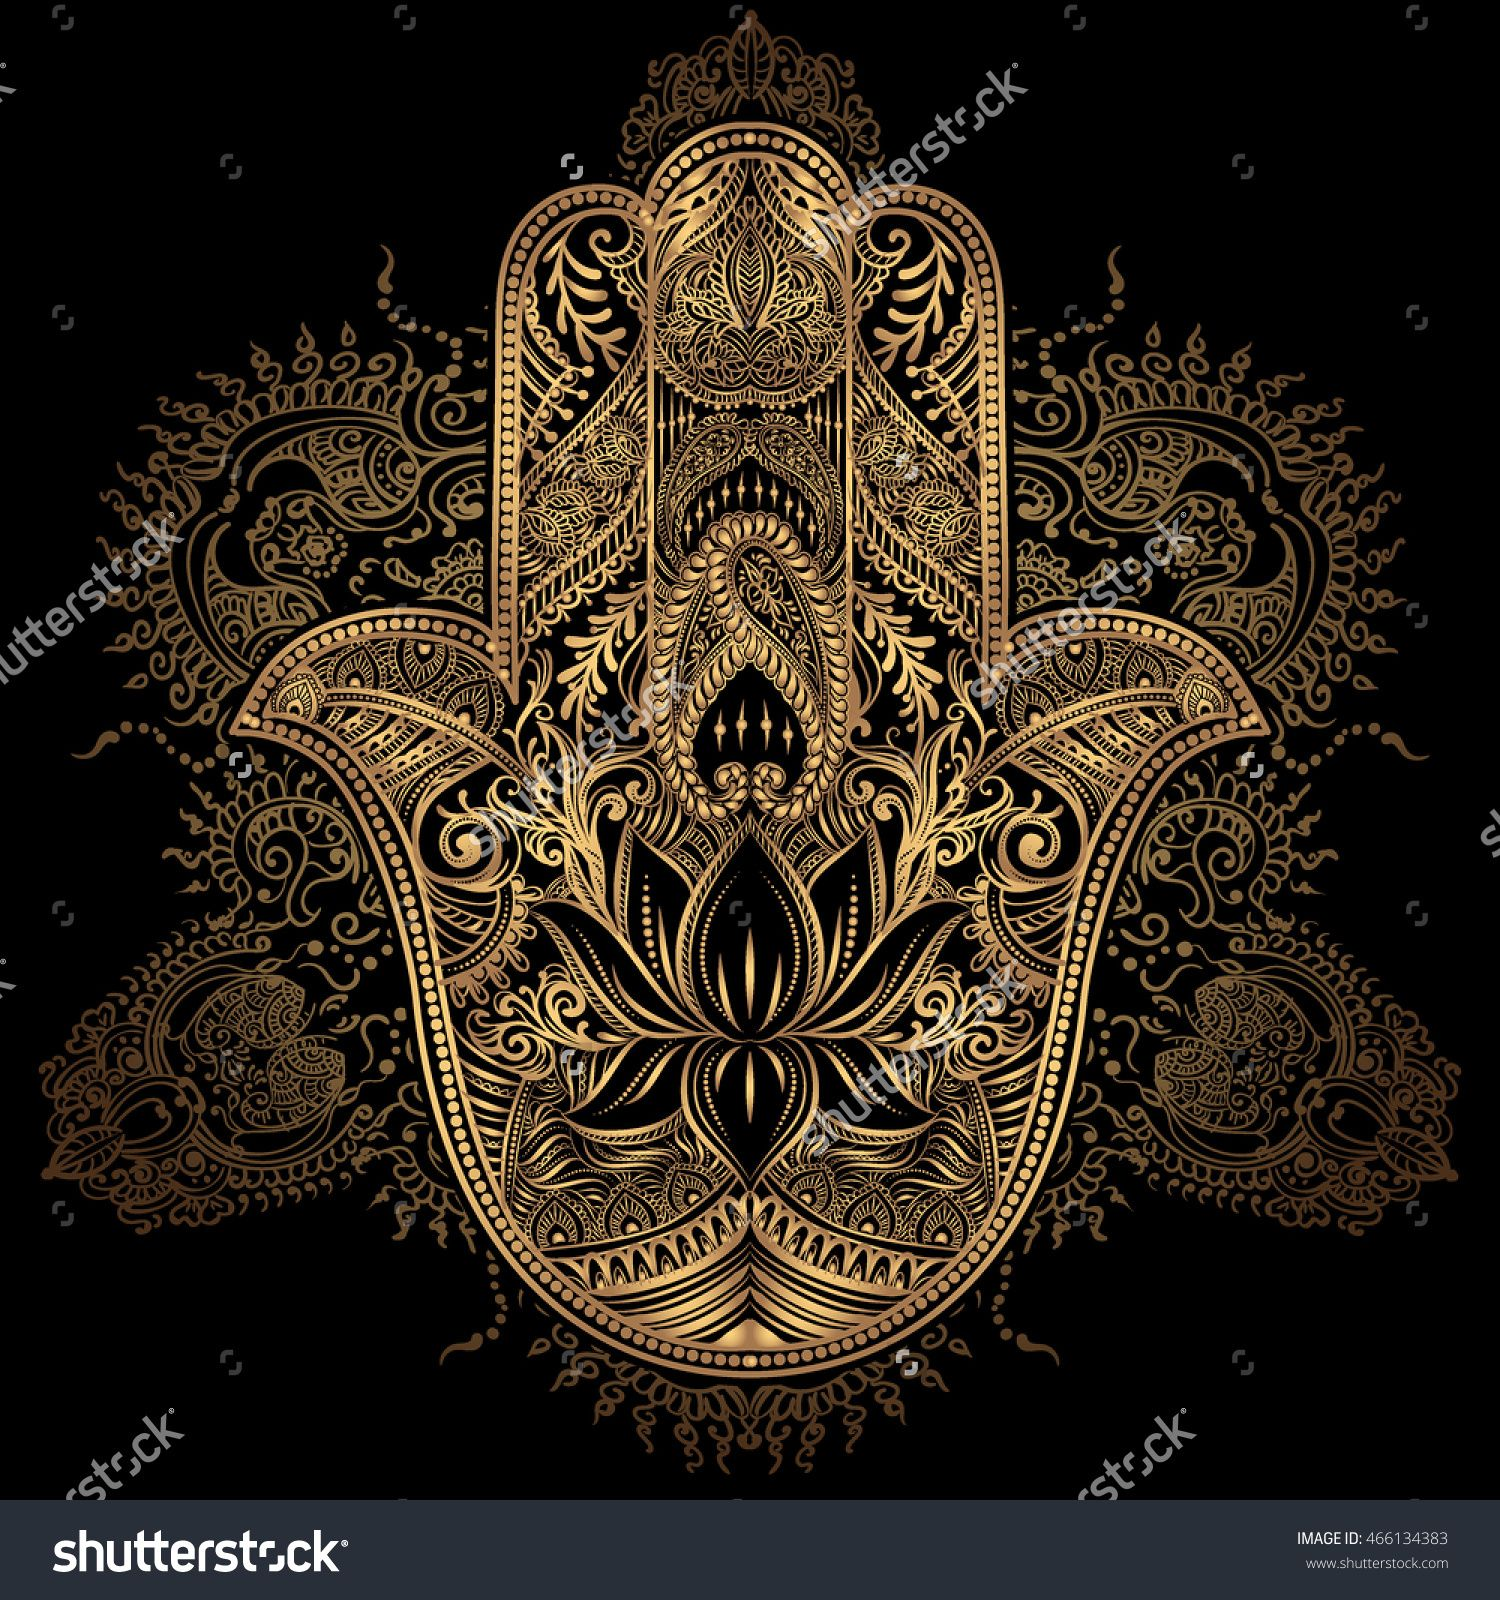 Hand drawn ornate amulet hamsa hand of fatima ethnic amulet hand drawn ornate amulet hamsa hand of fatima ethnic amulet common in indian arabic and jewish cultures buy this stock vector on shutterstock find biocorpaavc